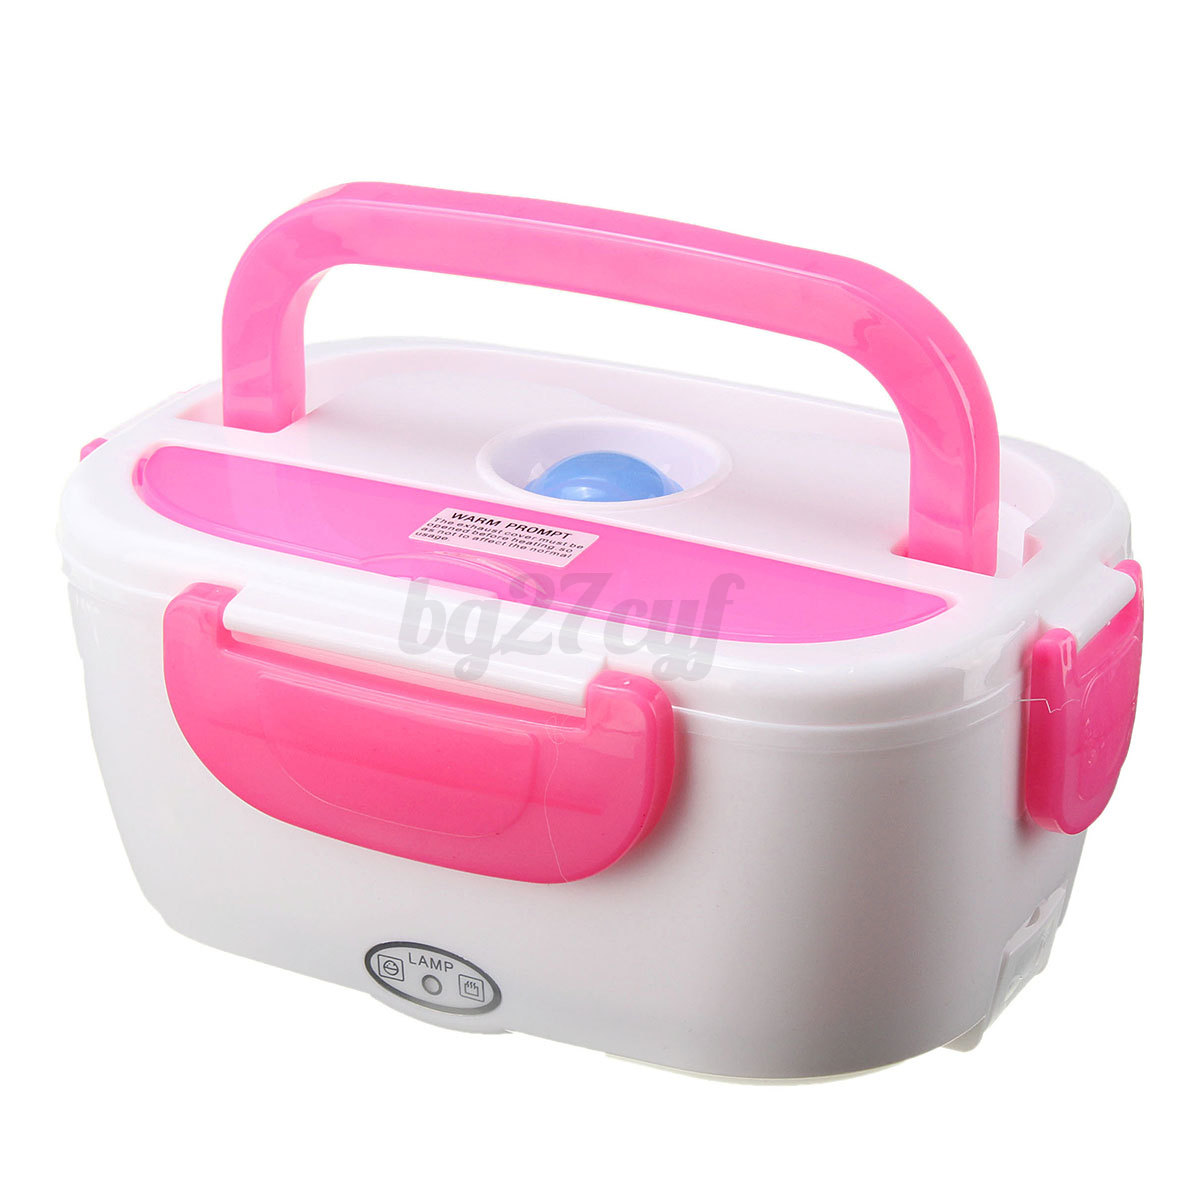 portable electric heated car plug heating lunch bento box food warmer 12v 1 5l ebay. Black Bedroom Furniture Sets. Home Design Ideas